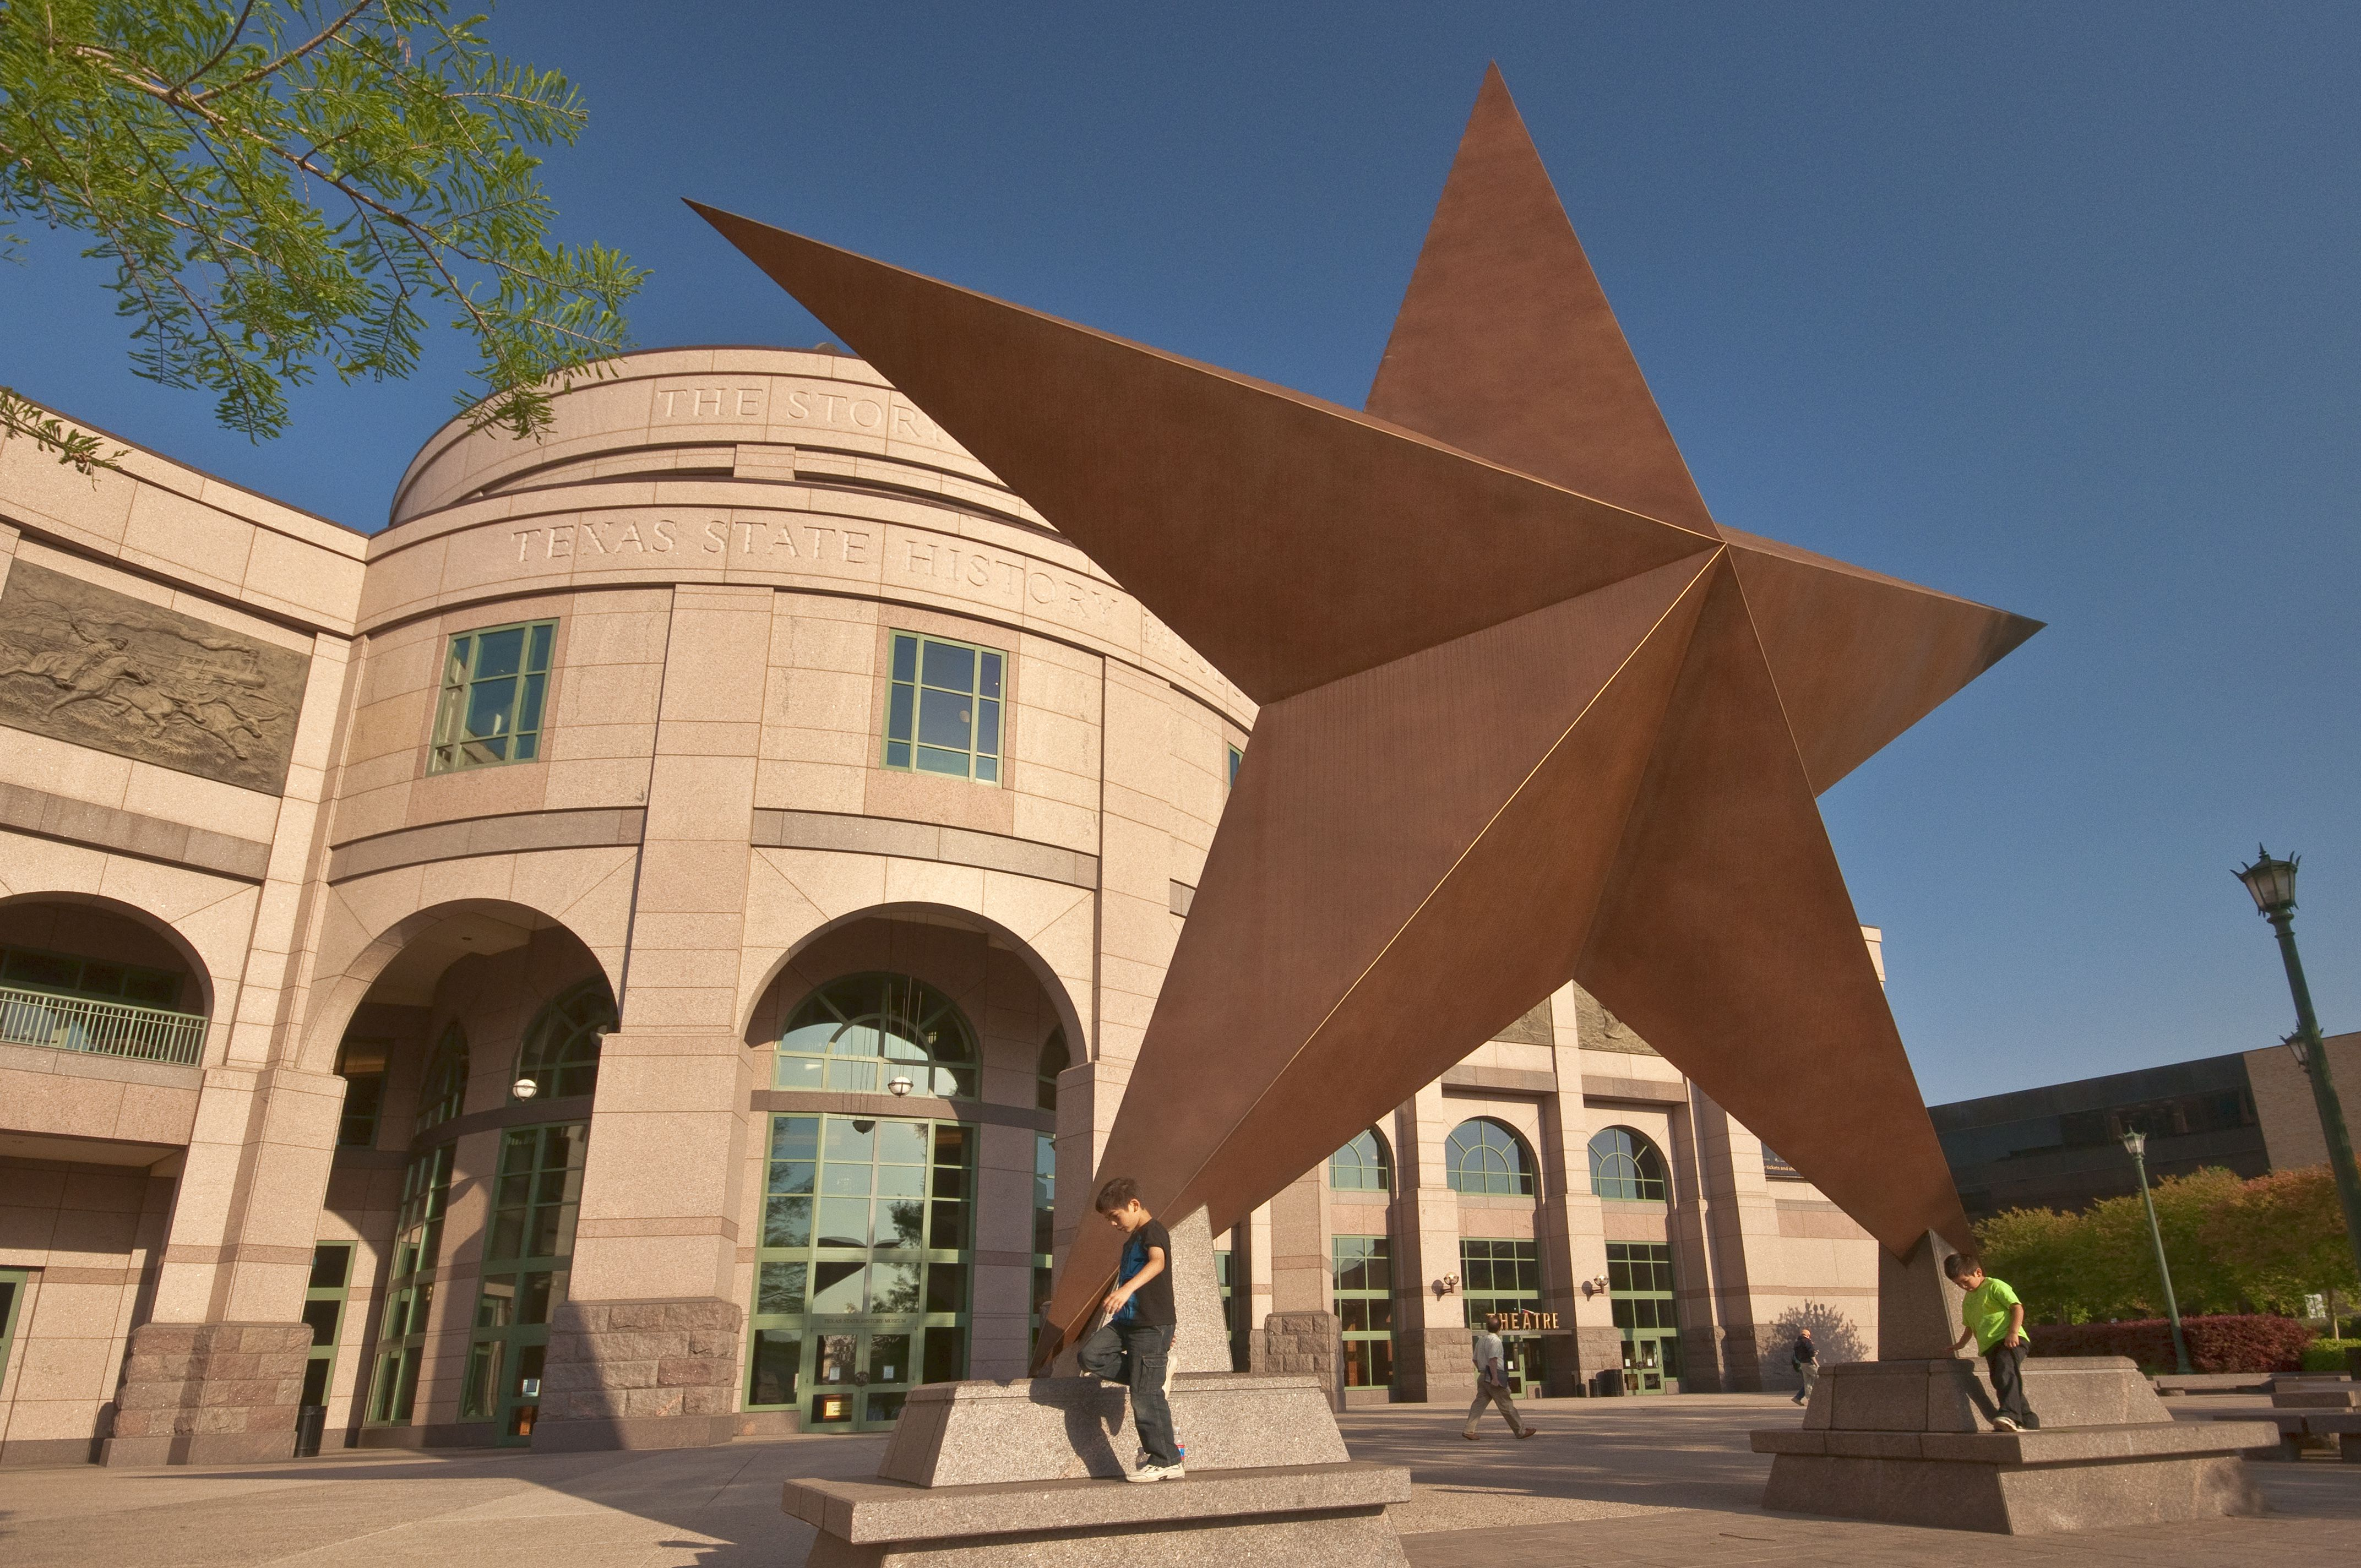 Huge 'Lone Star' in front of Bob Bullock Texas State History Museum.